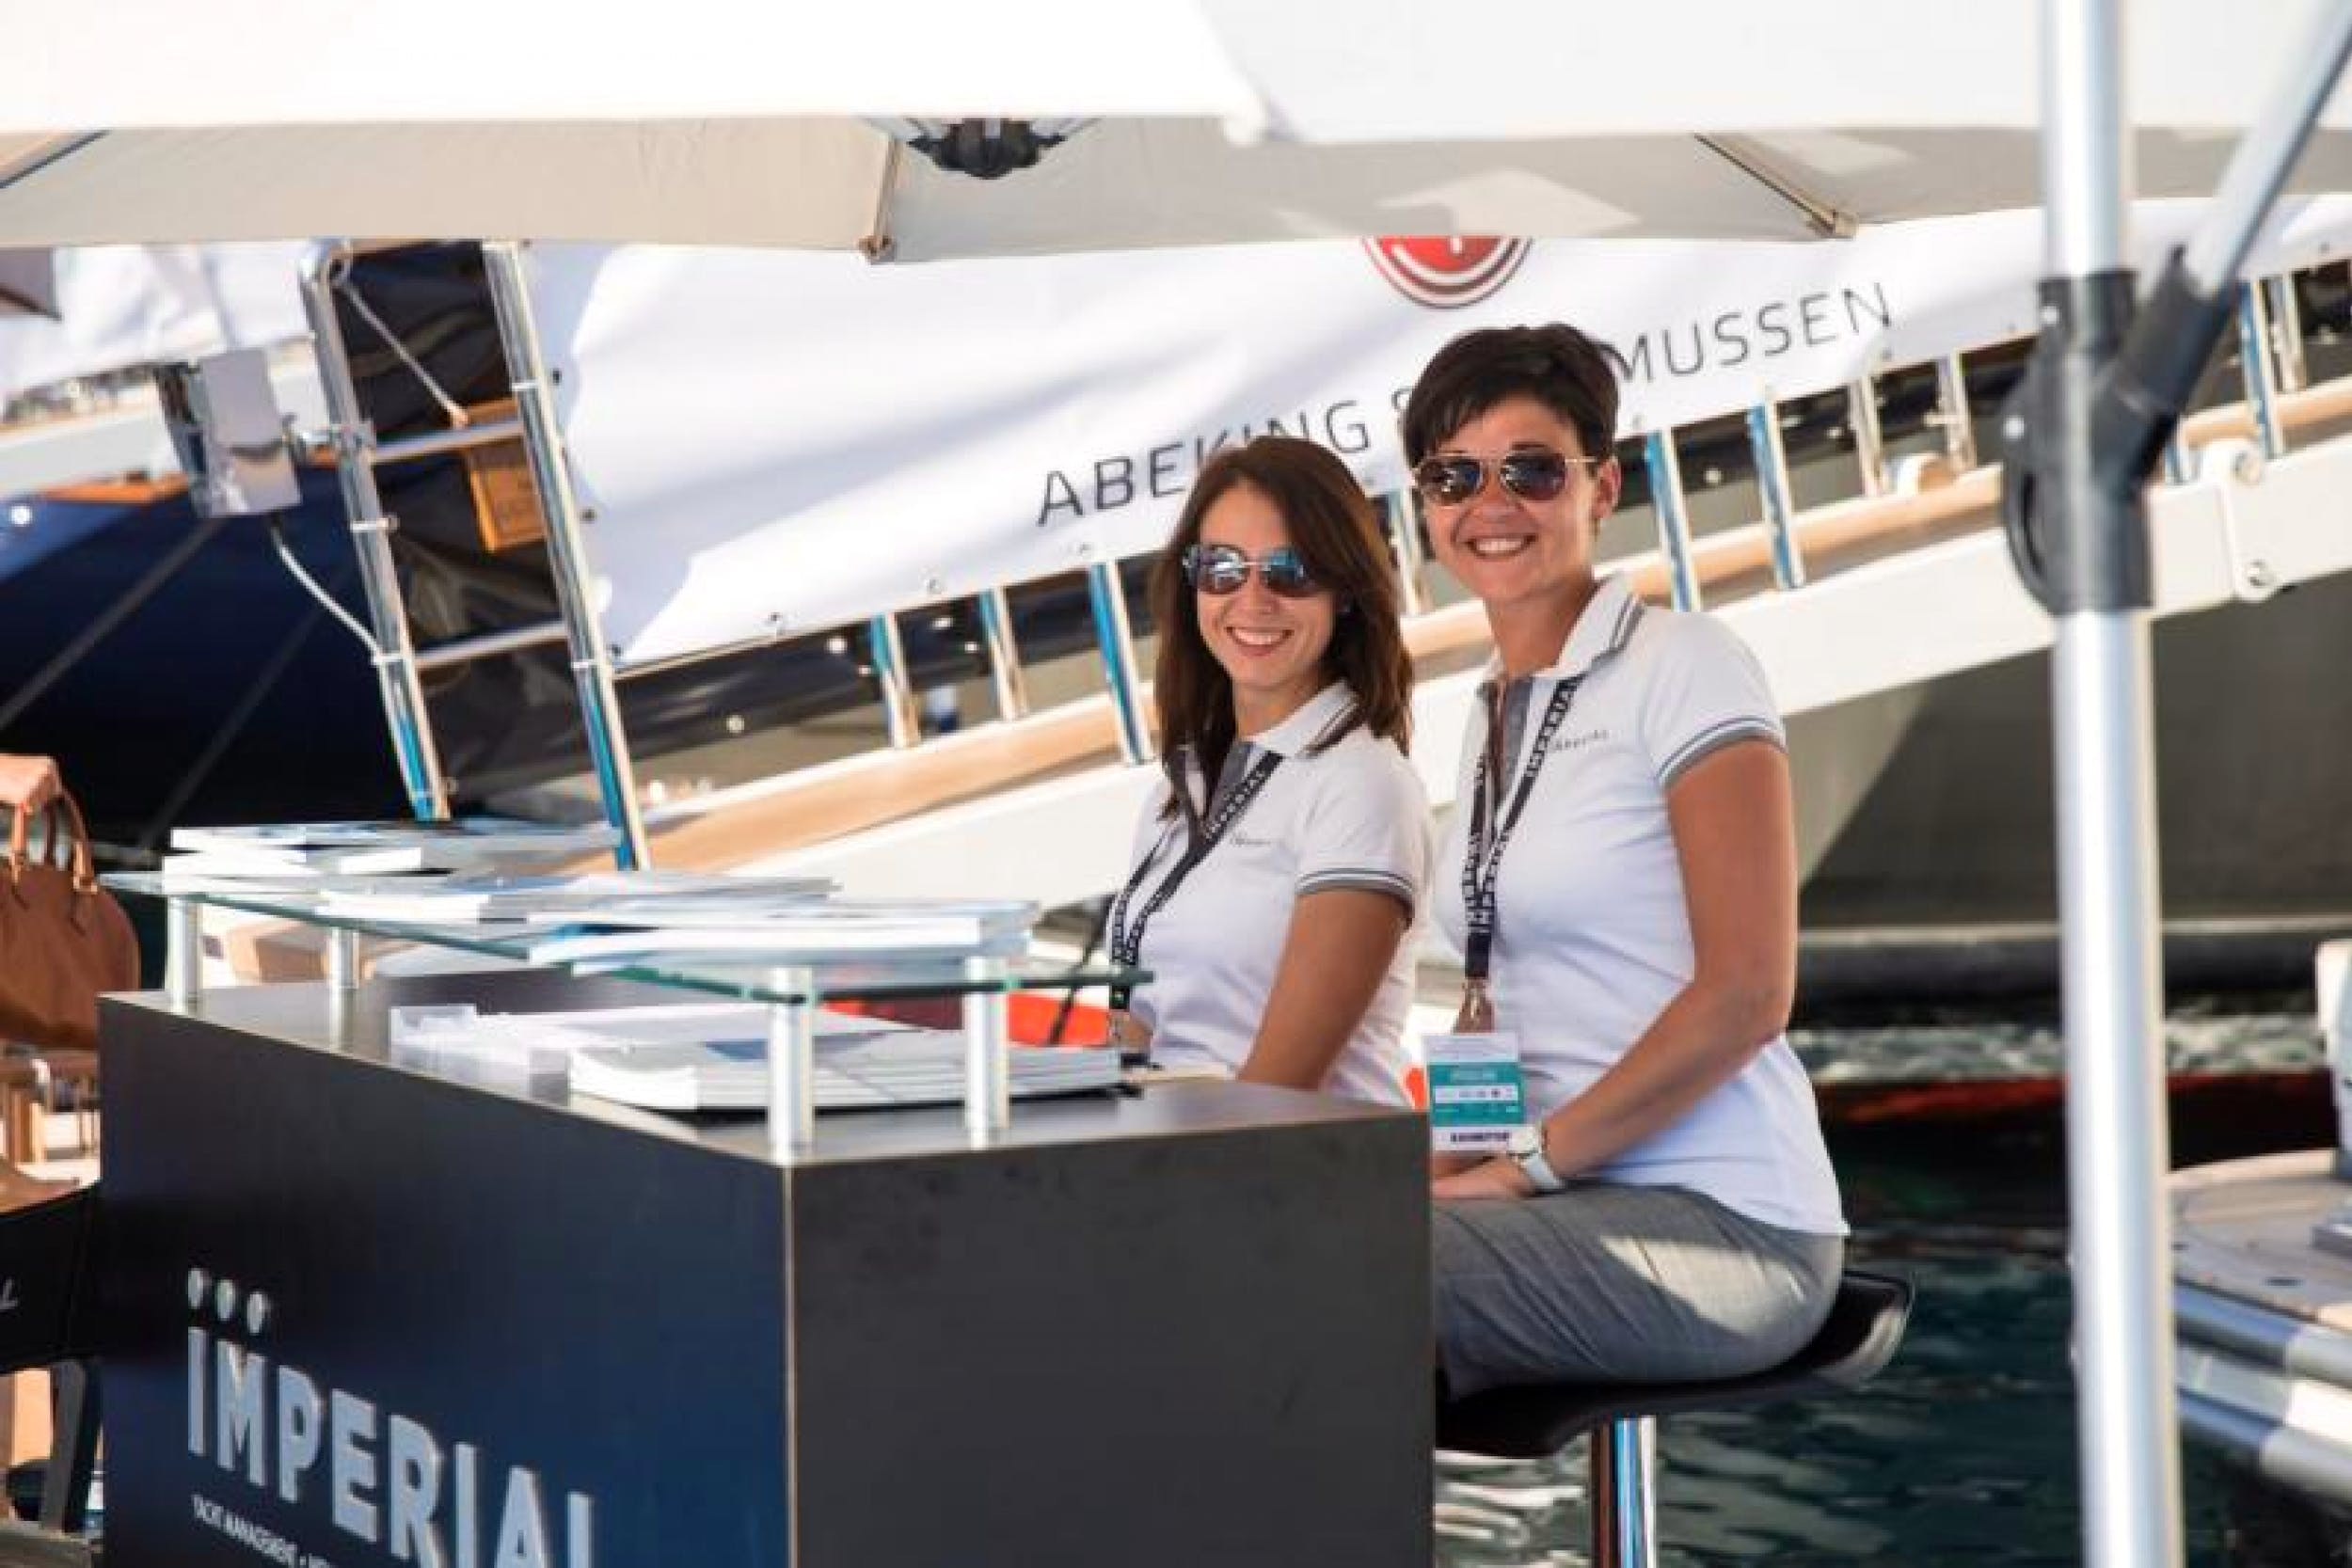 Receptionist/Office Administrator Assistant with Imperial Yachts